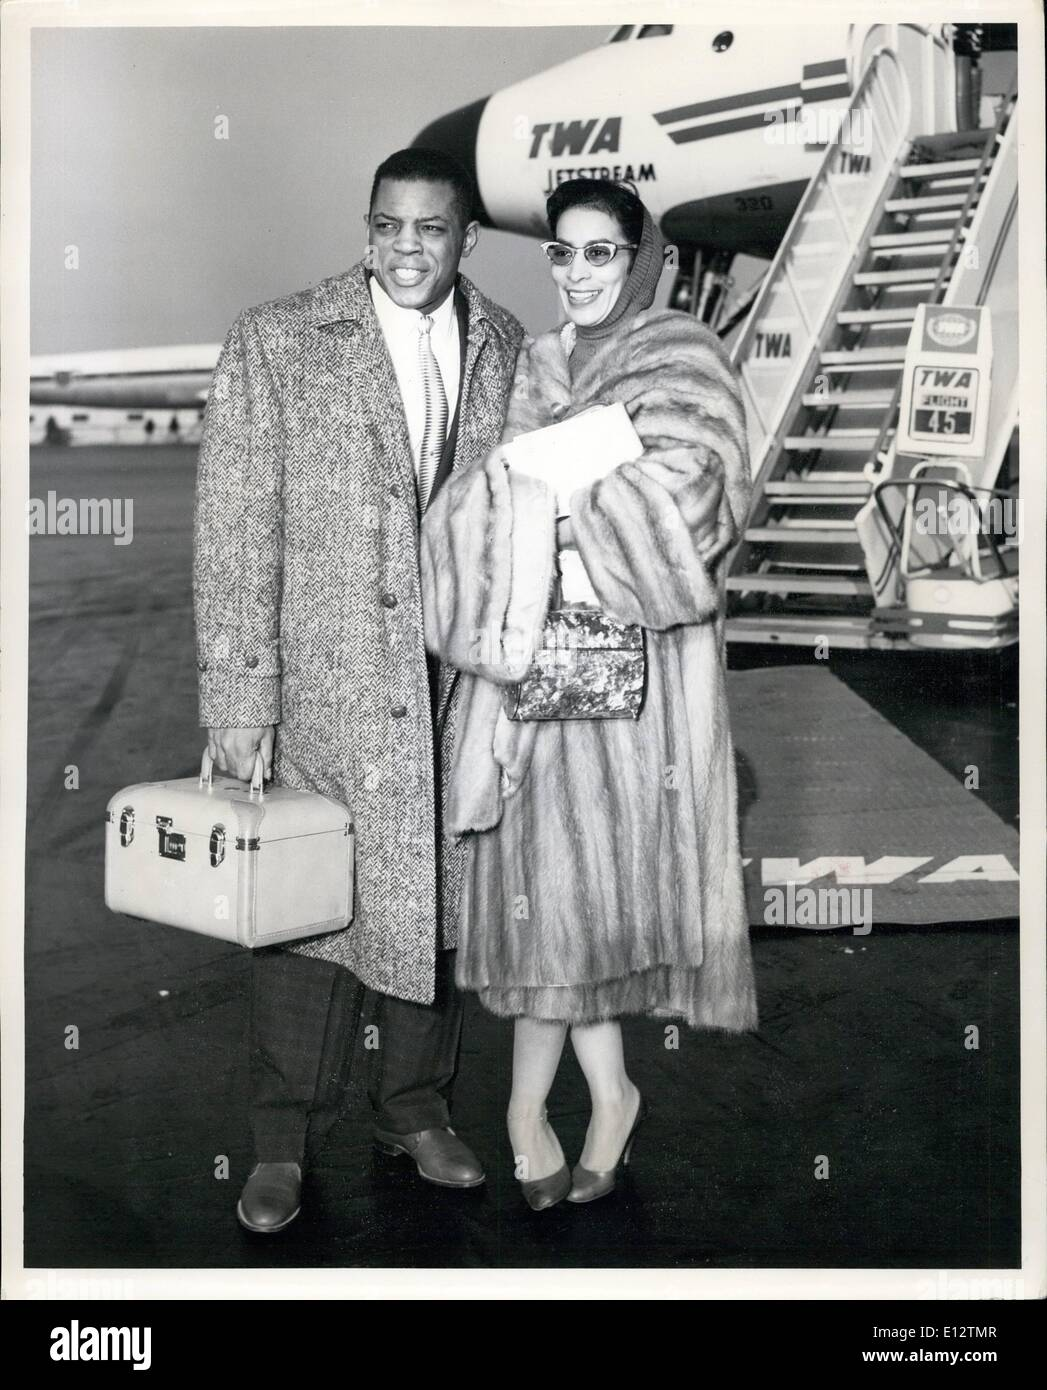 Feb. 24, 2012 - Idlewild Airport, N.Y., Jan. 3 - The ''Say Hey'' Kid, Willie Kays, Star Outfielder Of The Giants, And His Wife Prepare To Board A TWA Jetstream Flight To San Francisco Where They Will Make Their New Home. The 1958 Baseball Season Signifies The First Year That California Will Enjoy National Baseball Representation. - Stock Image